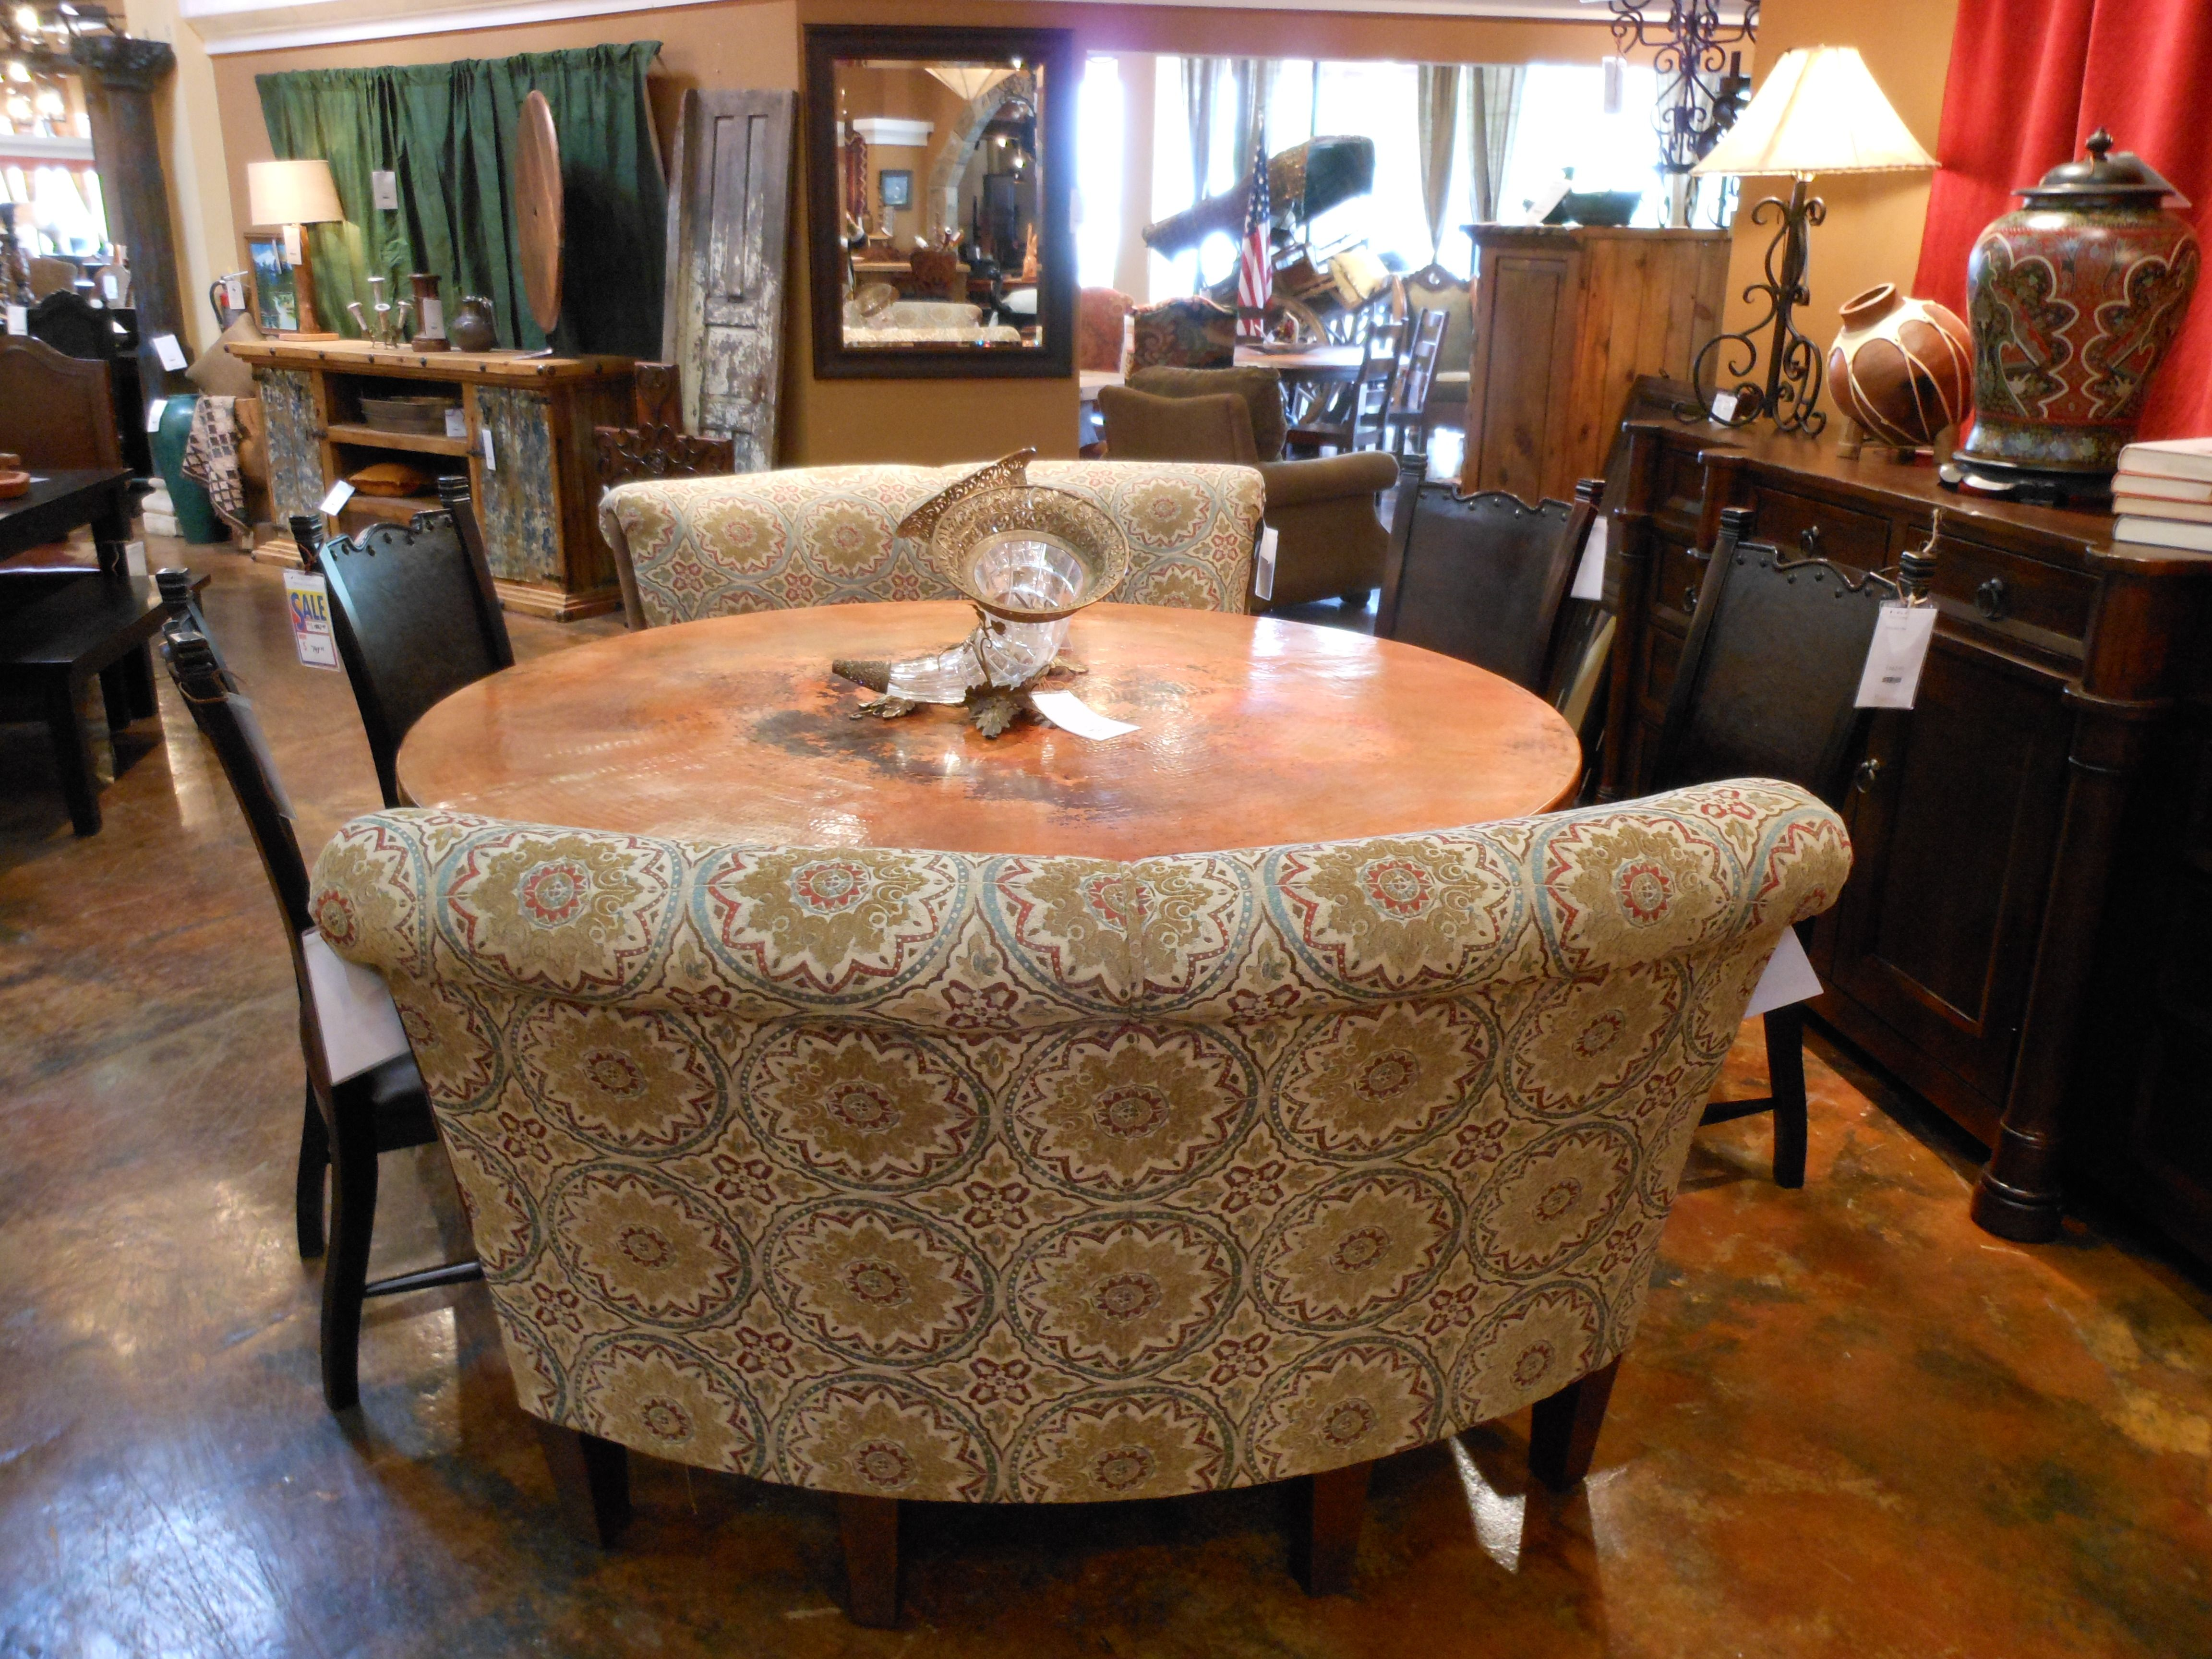 Great New Banquet Benches From Mayo Furniture Of Texarkana Texas With A Copper  Table From Mexico.